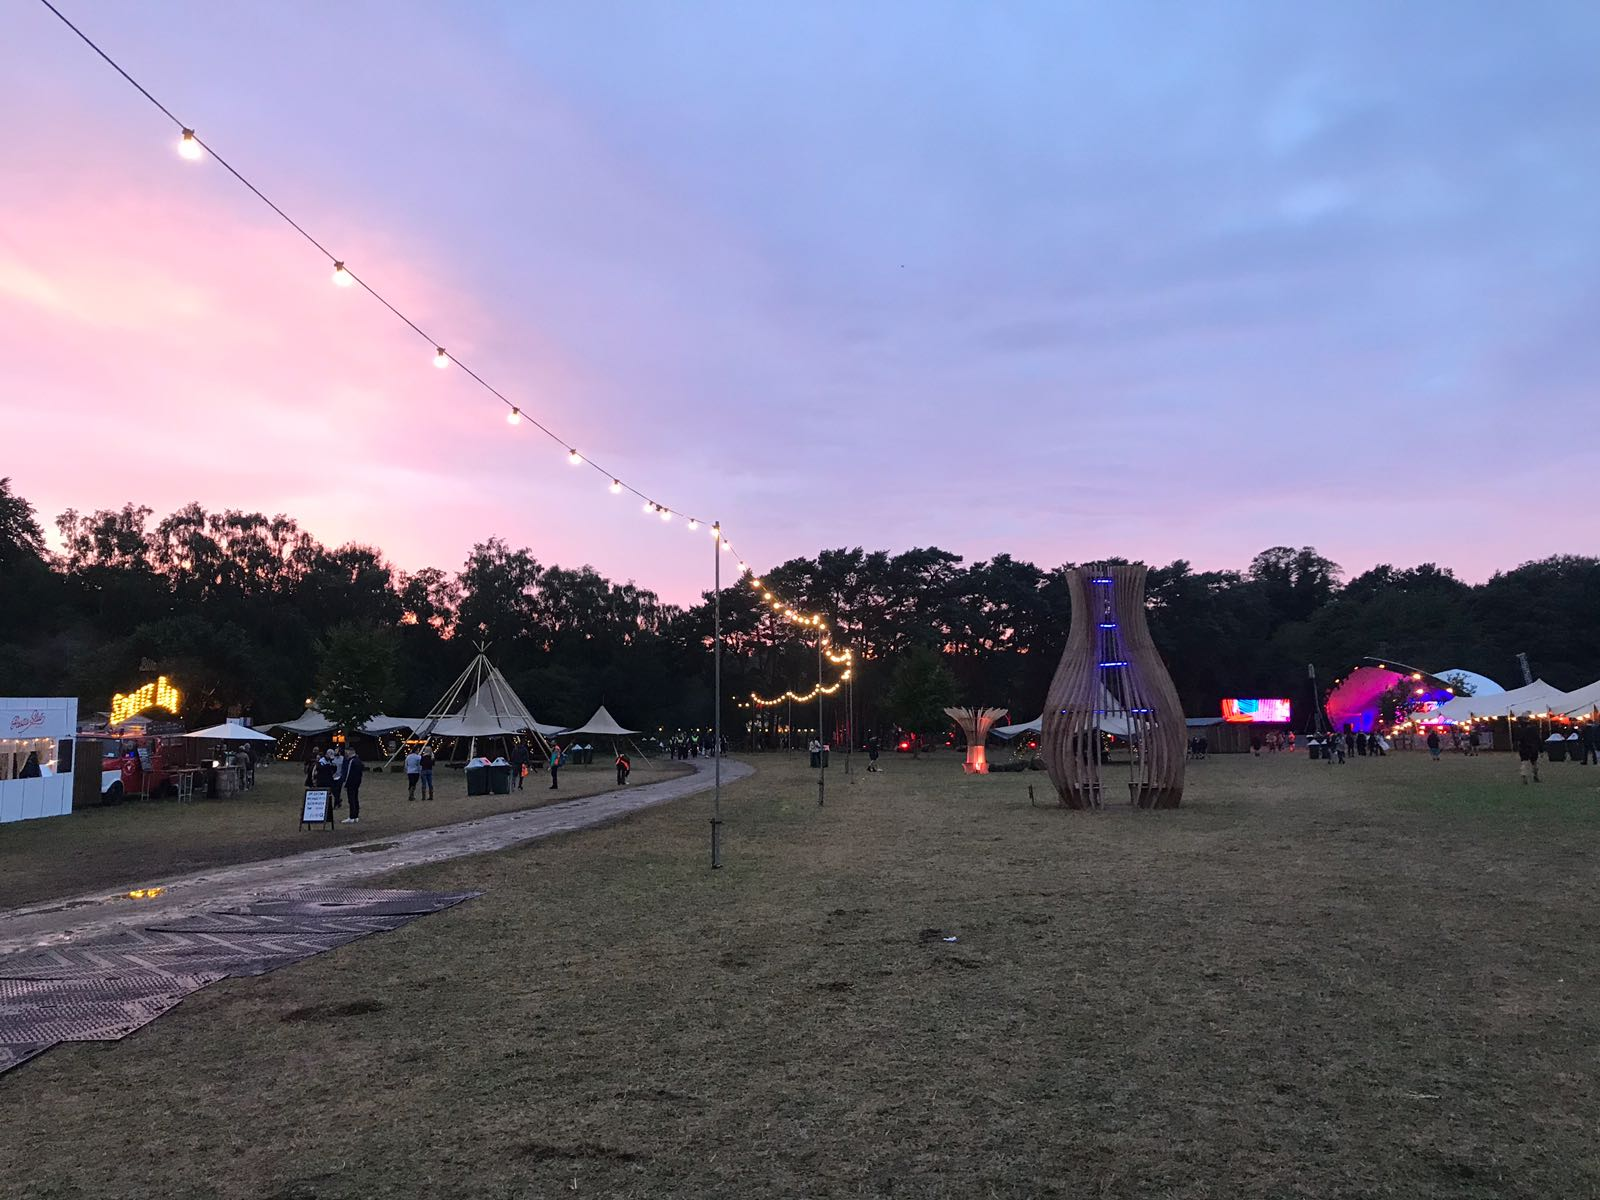 The sun rises over the entrance to the Houghton Festival arena. Image: Tom Jenkins